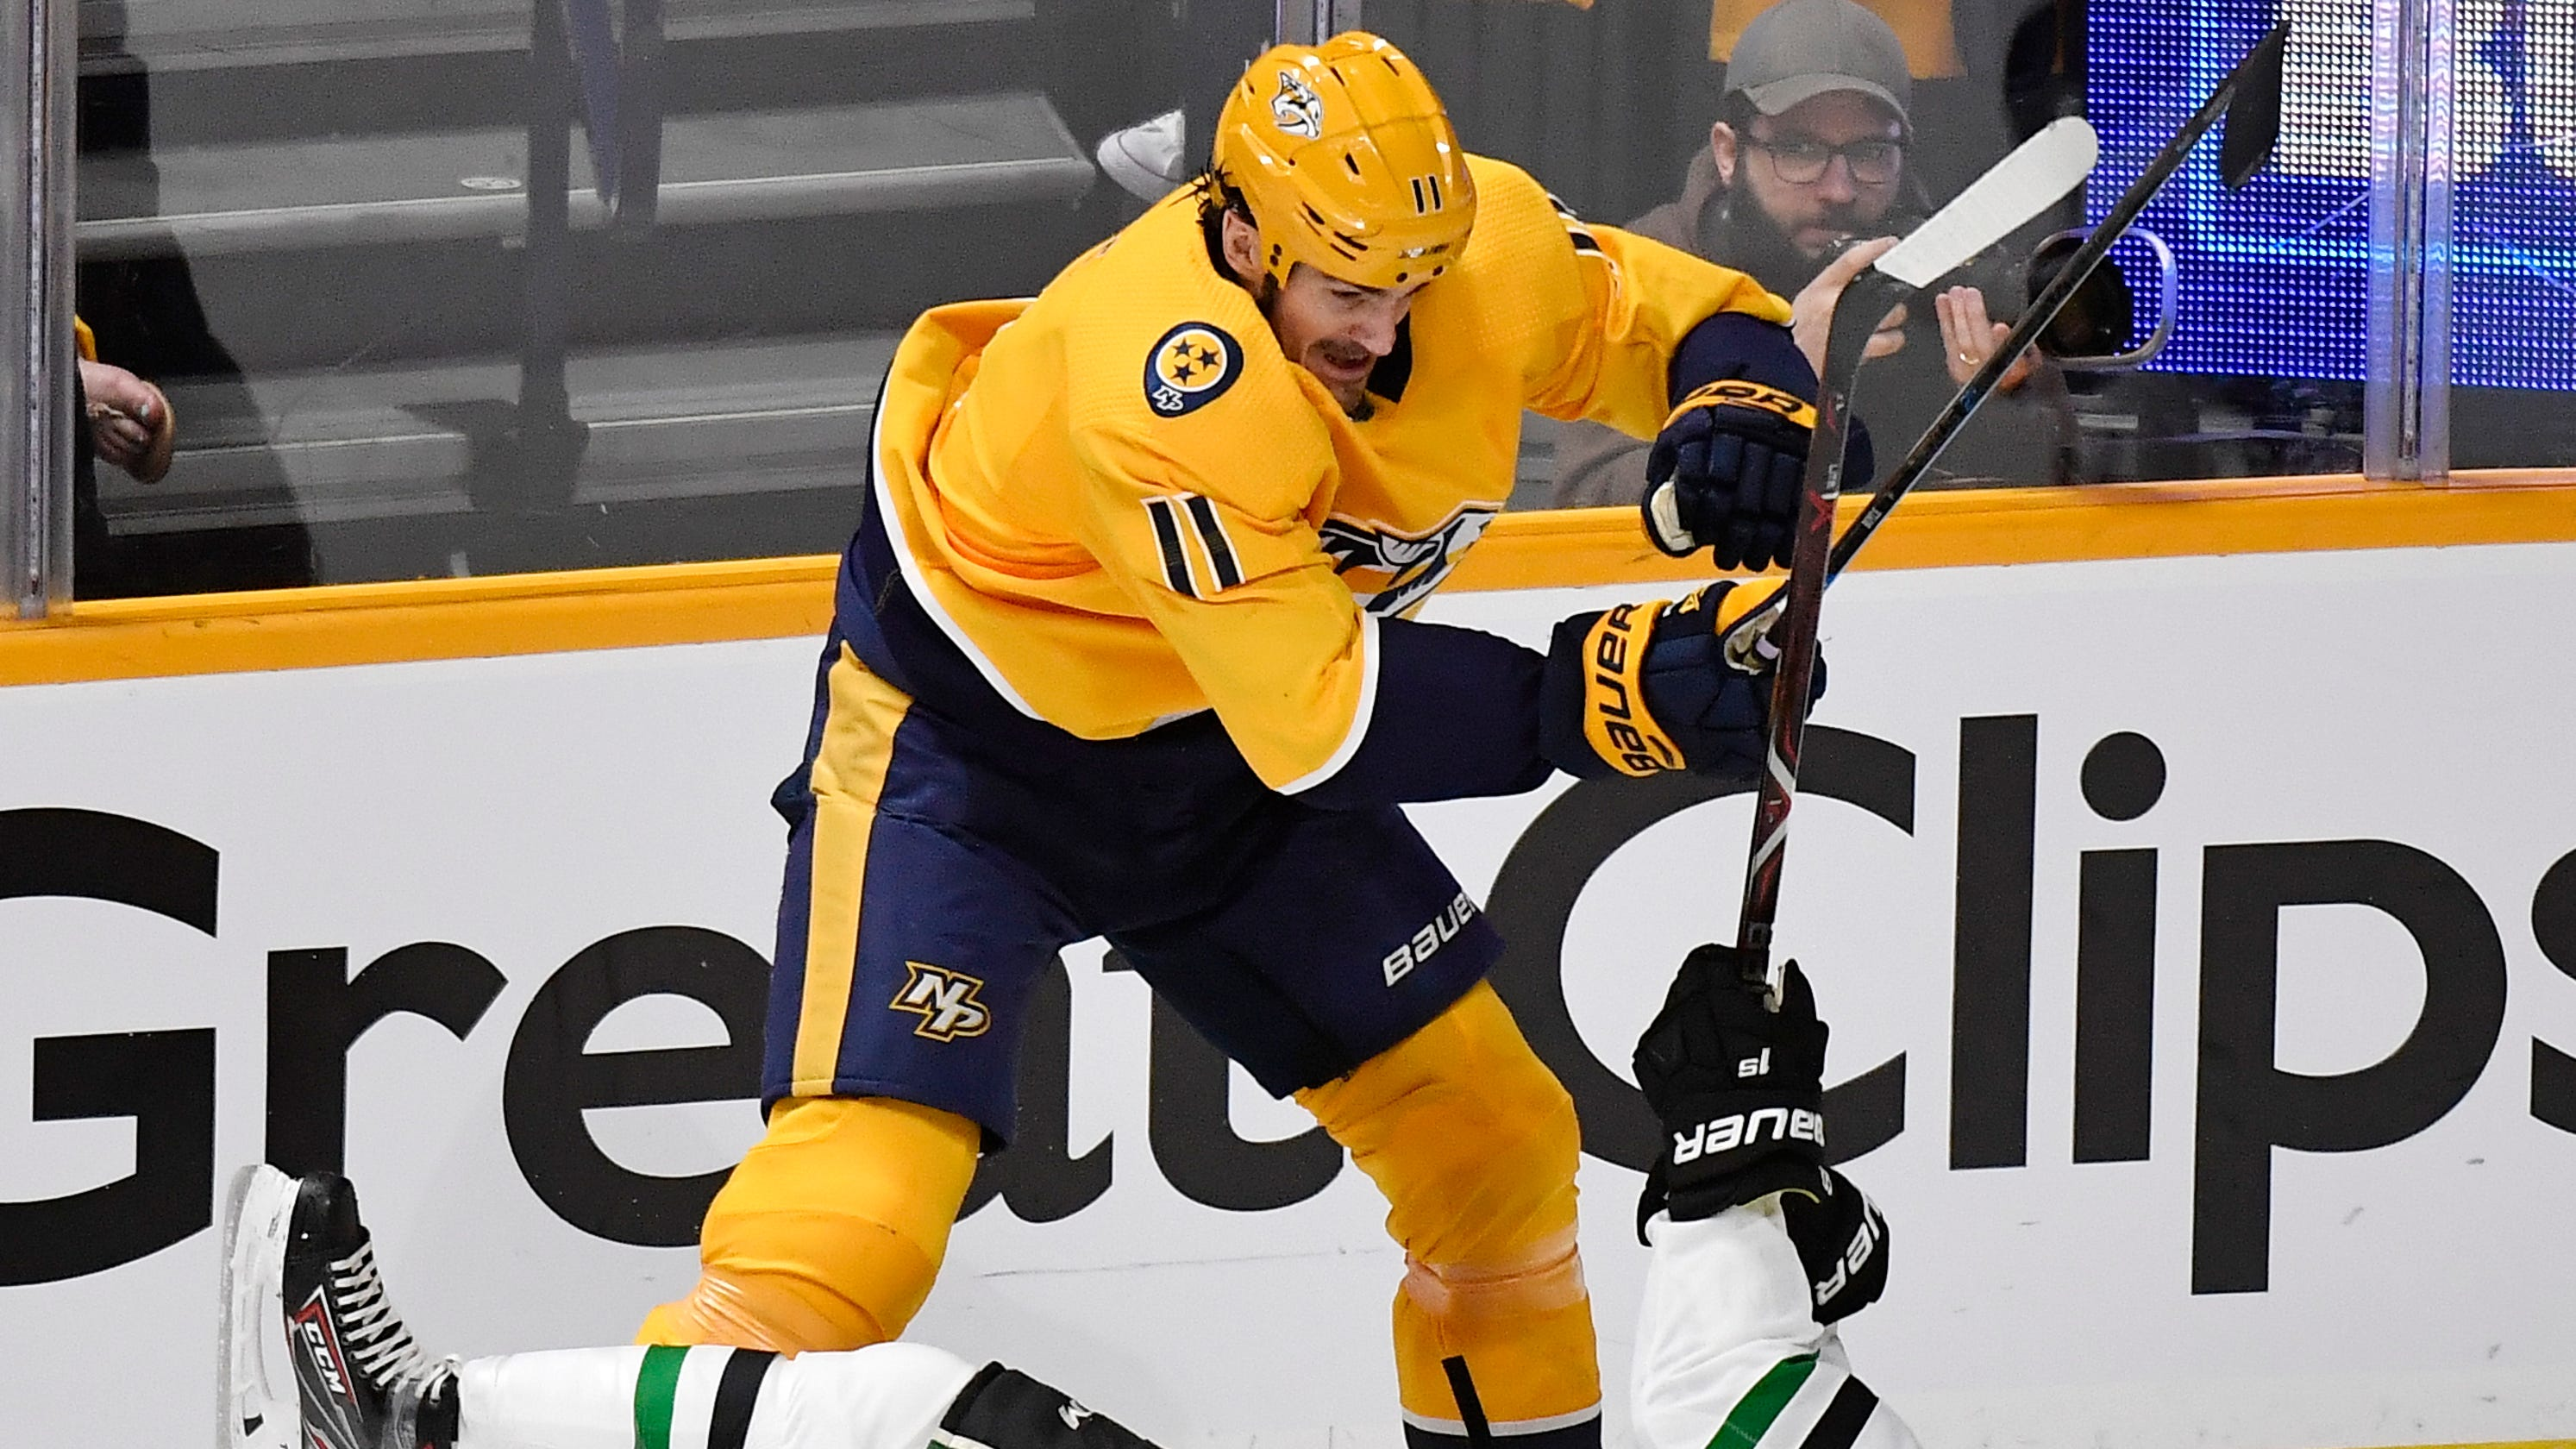 separation shoes 45a24 a00a5 Simmonds, Boyle out; Grimaldi, Salomaki in for Preds vs ...